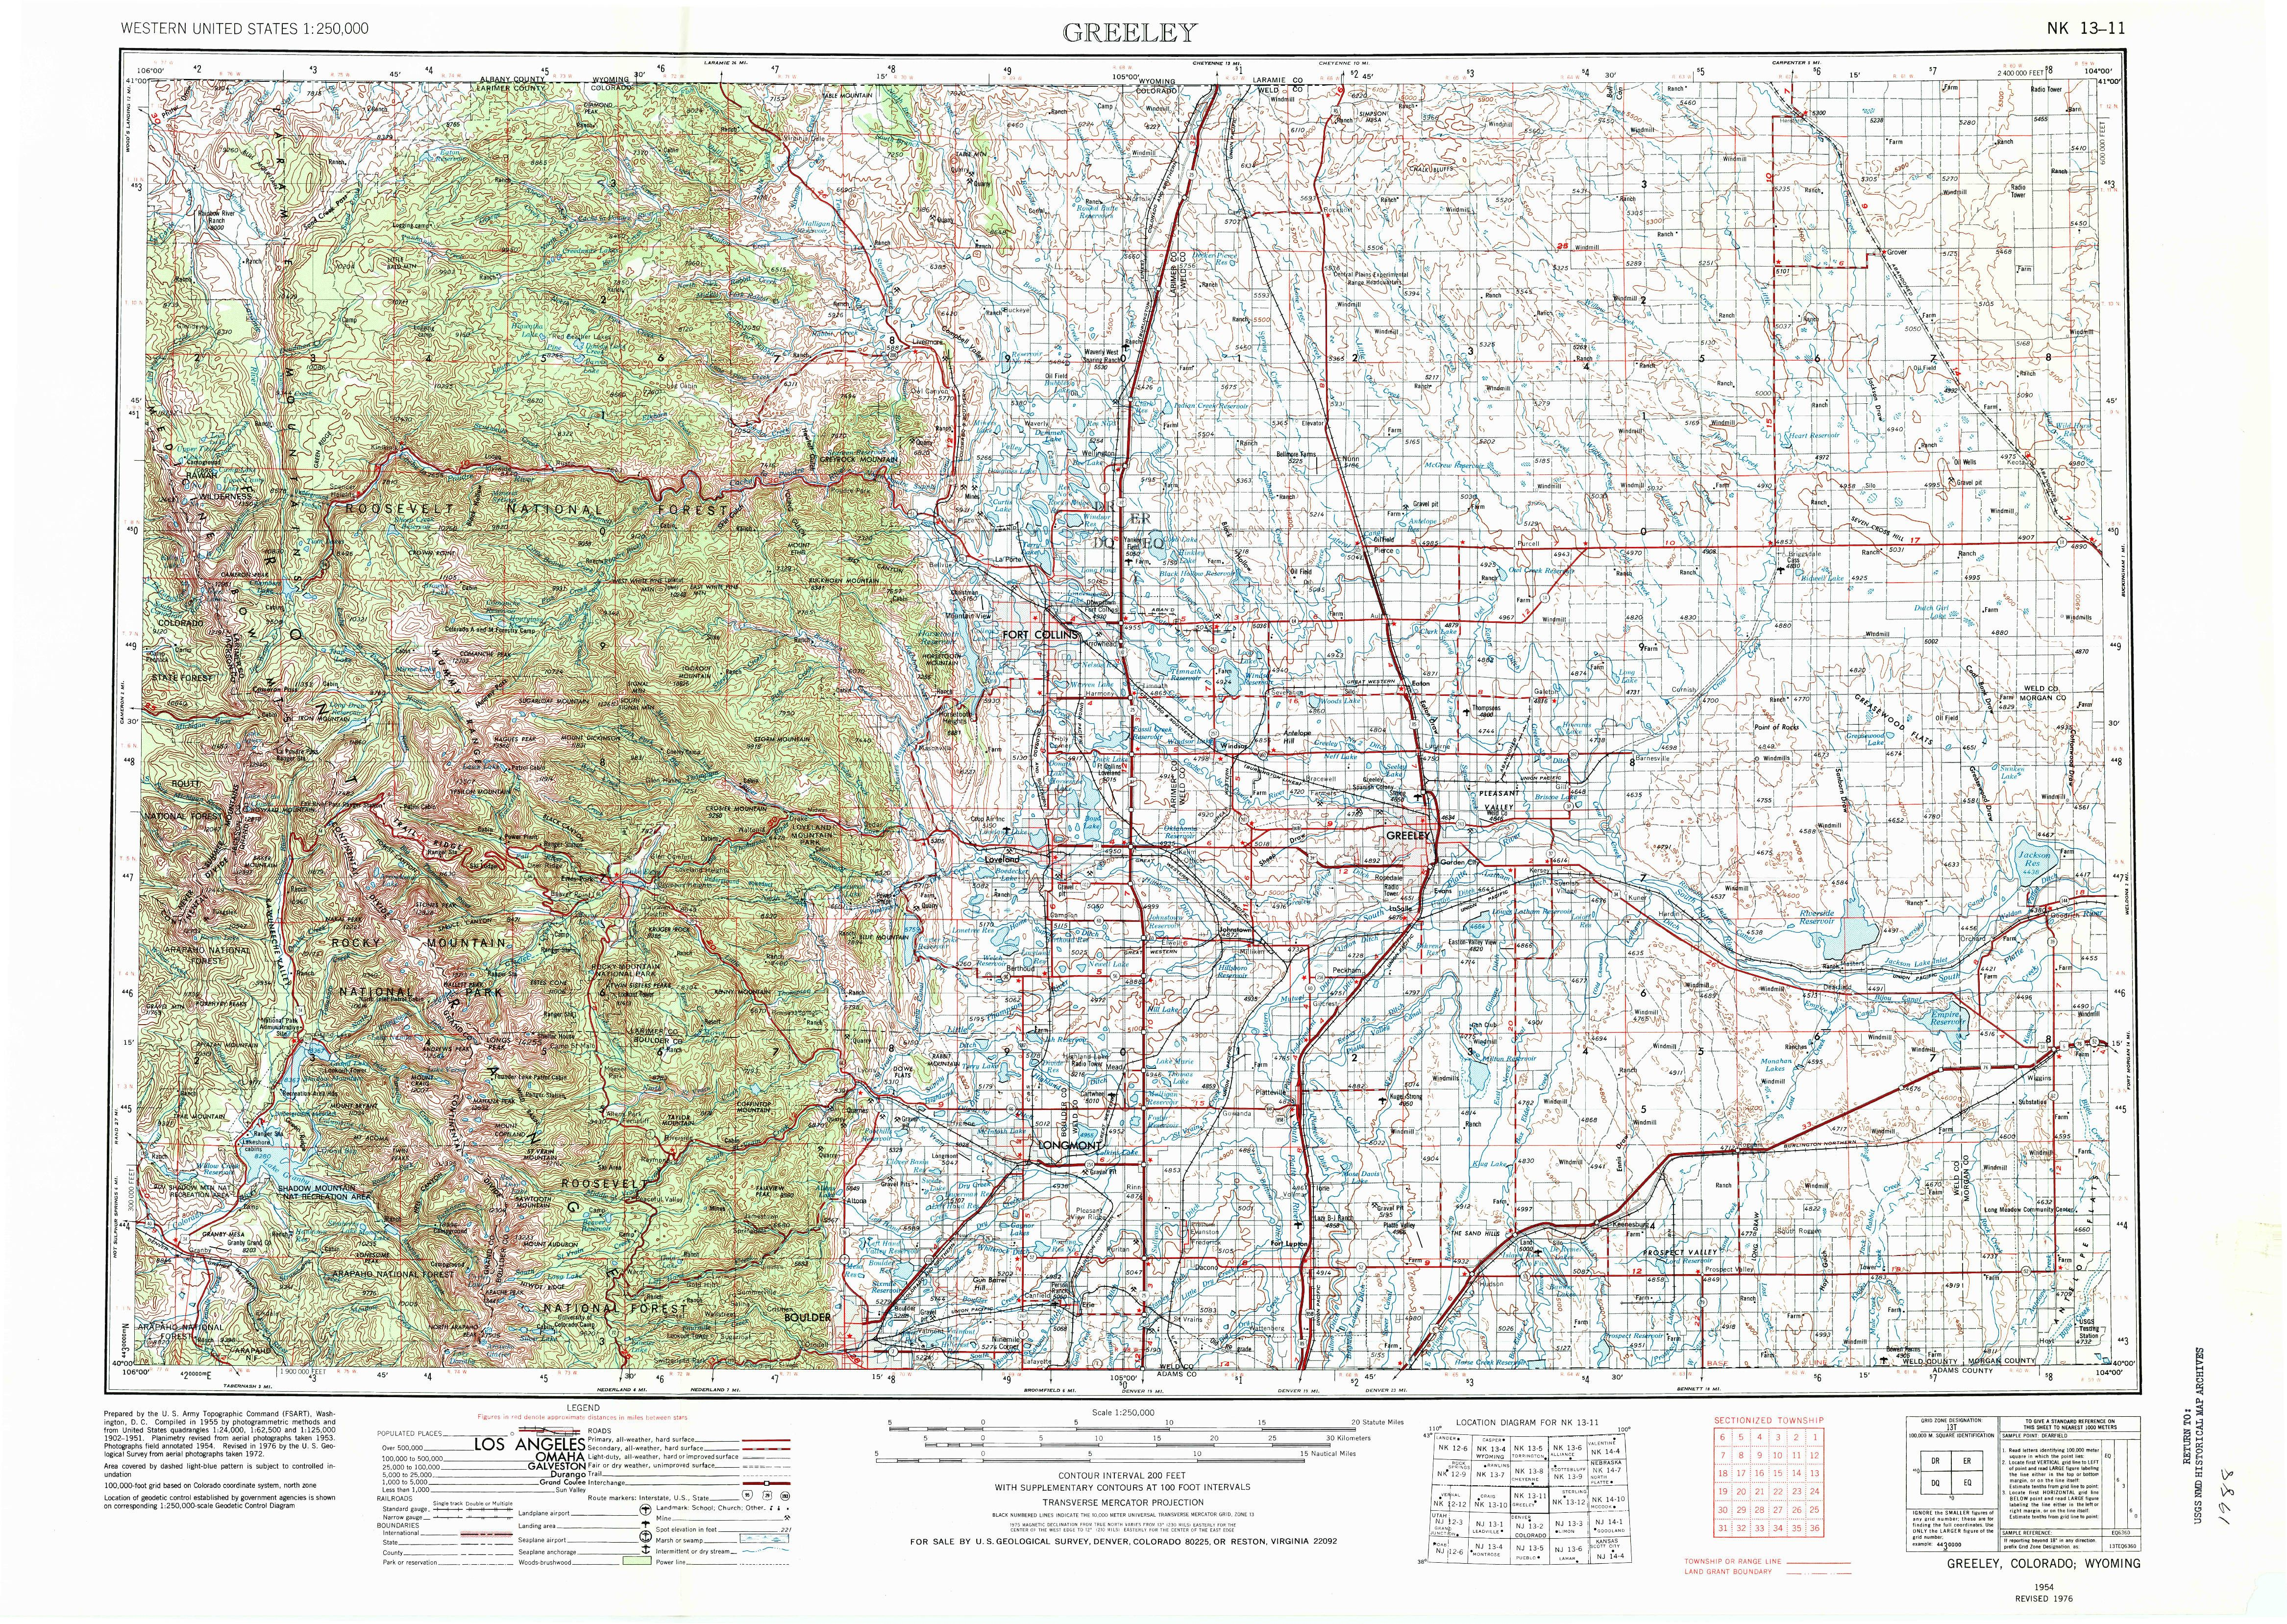 Greeley CO Map From The USGS Historical Topographic Map - Topographic map of western us